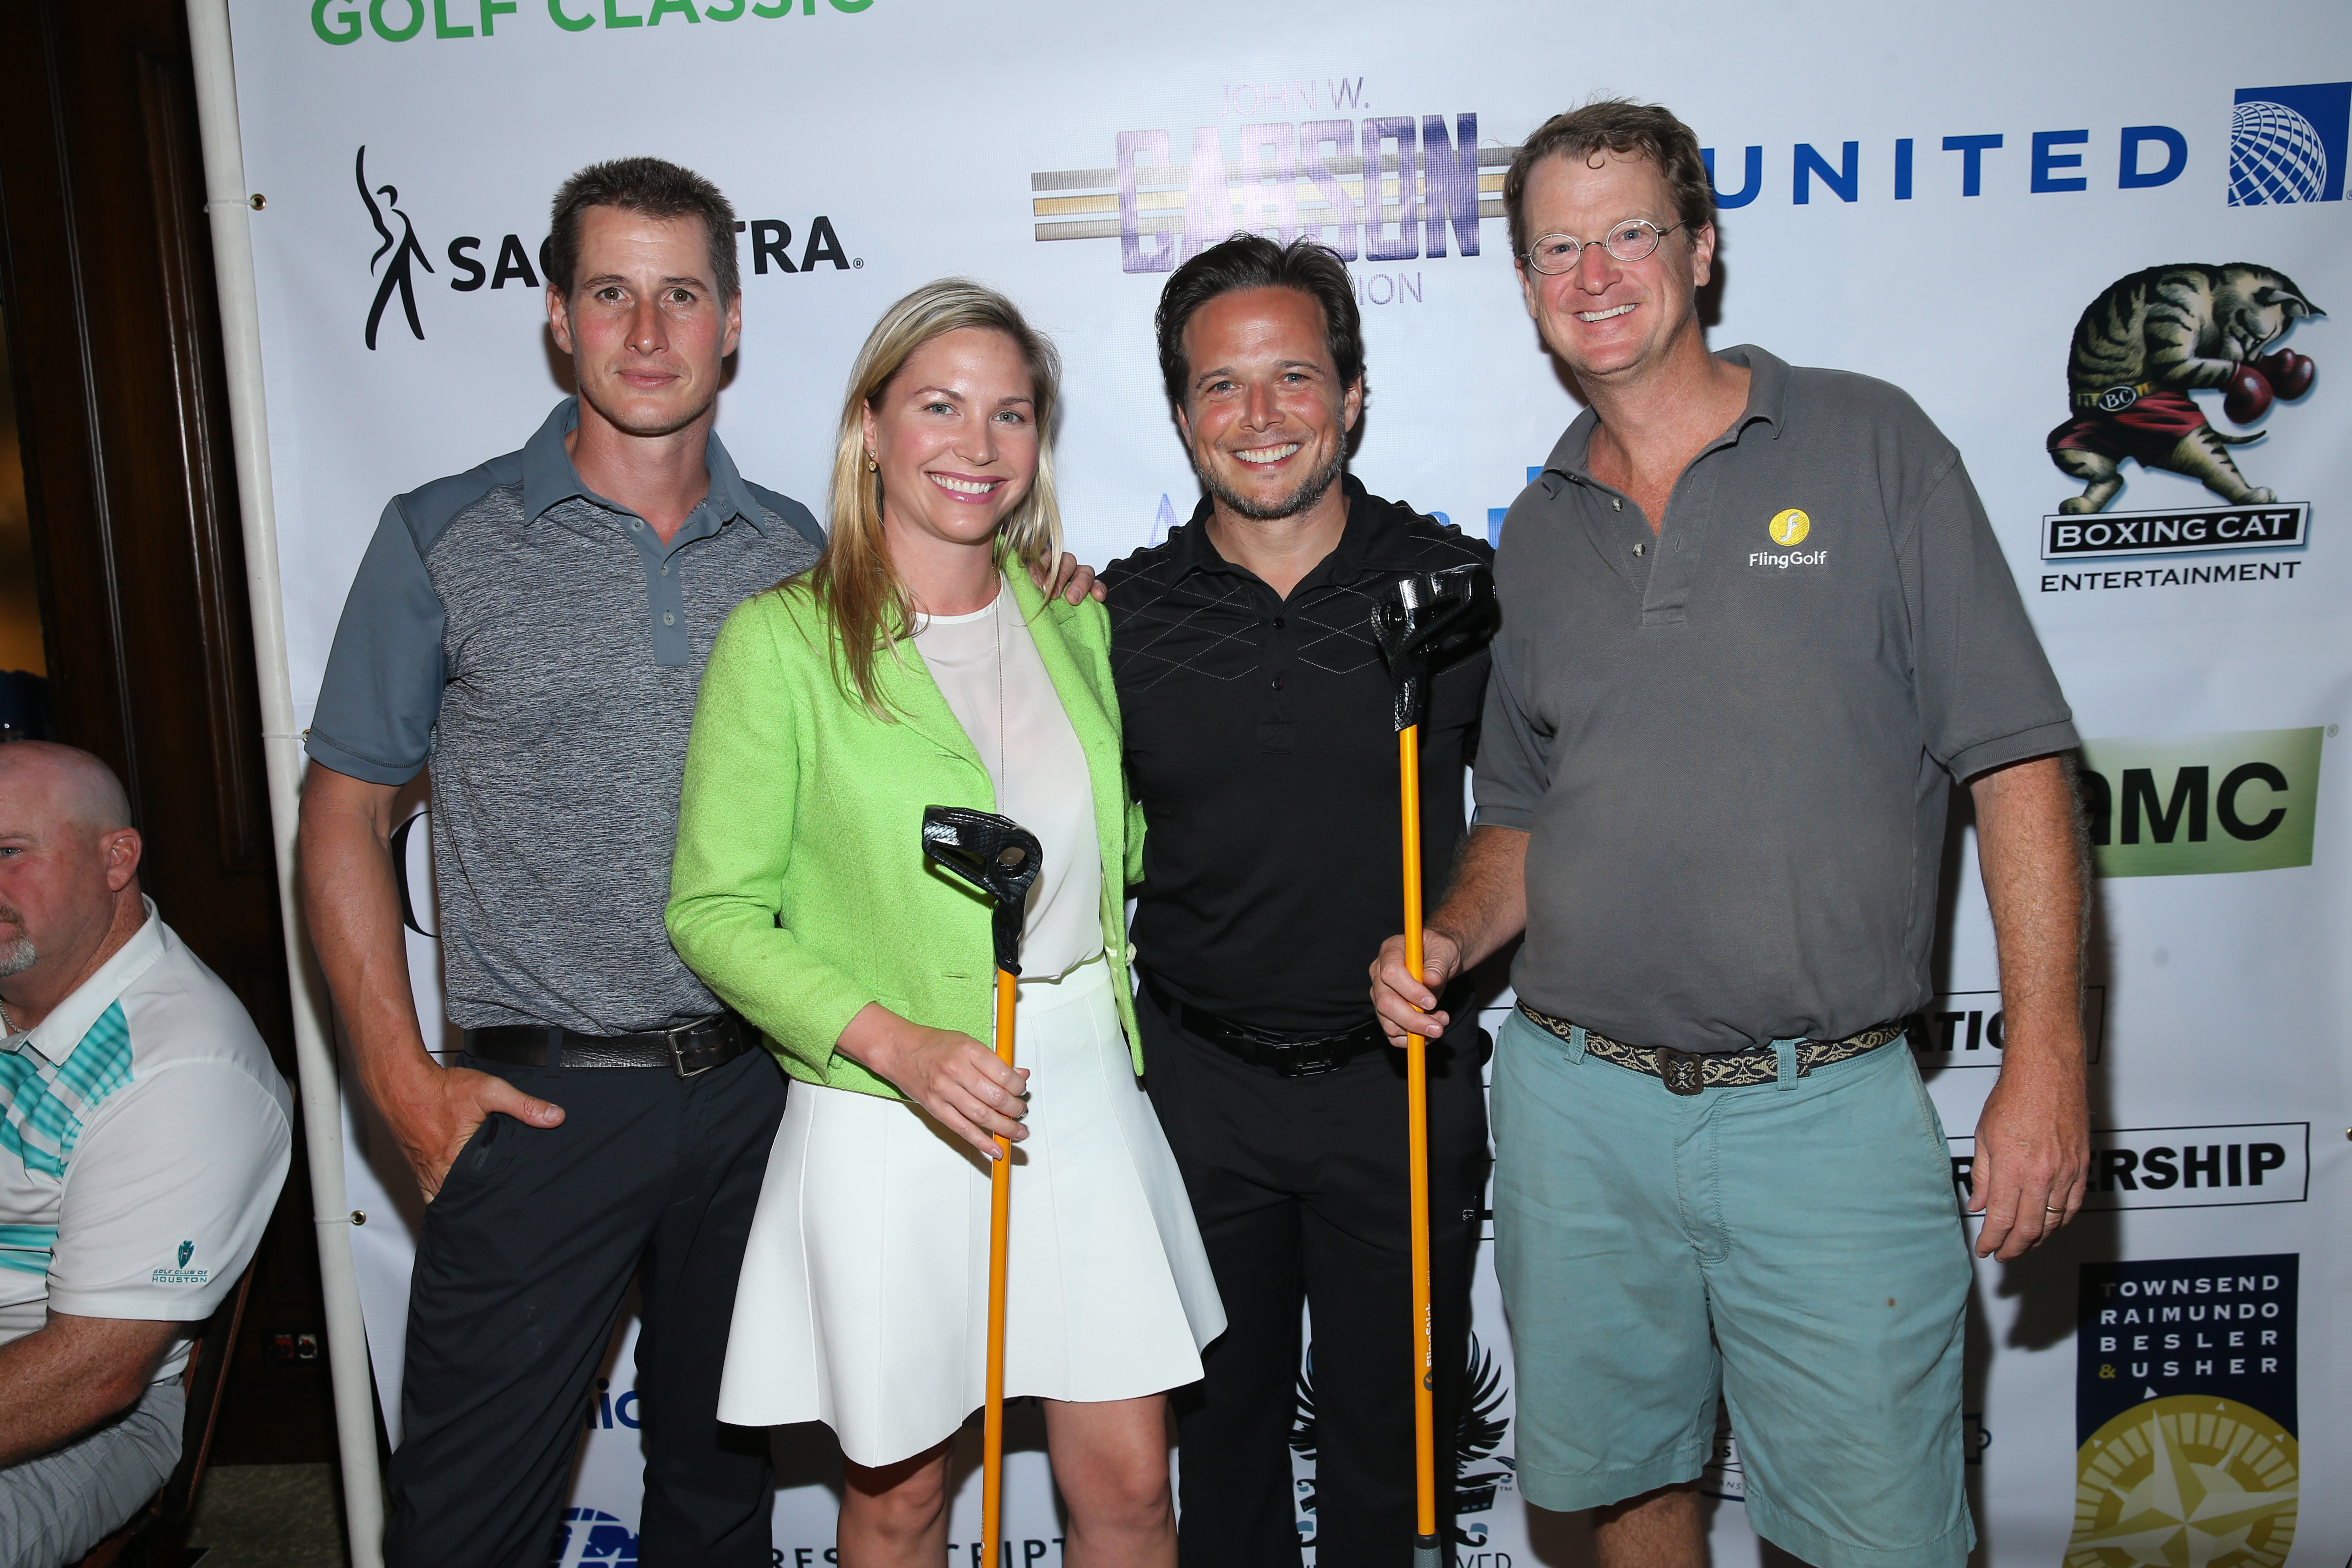 Sponsor 'Fling Golf' with Brendan Fehr and Scott Wolf at The Screen Actors Guild Foundation's 6th Annual Los Angeles Golf Classic on June 8, 2015 in Burbank, California. (Photo by Mark Davis/Getty Images for The Screen Actors Guild Foundation)